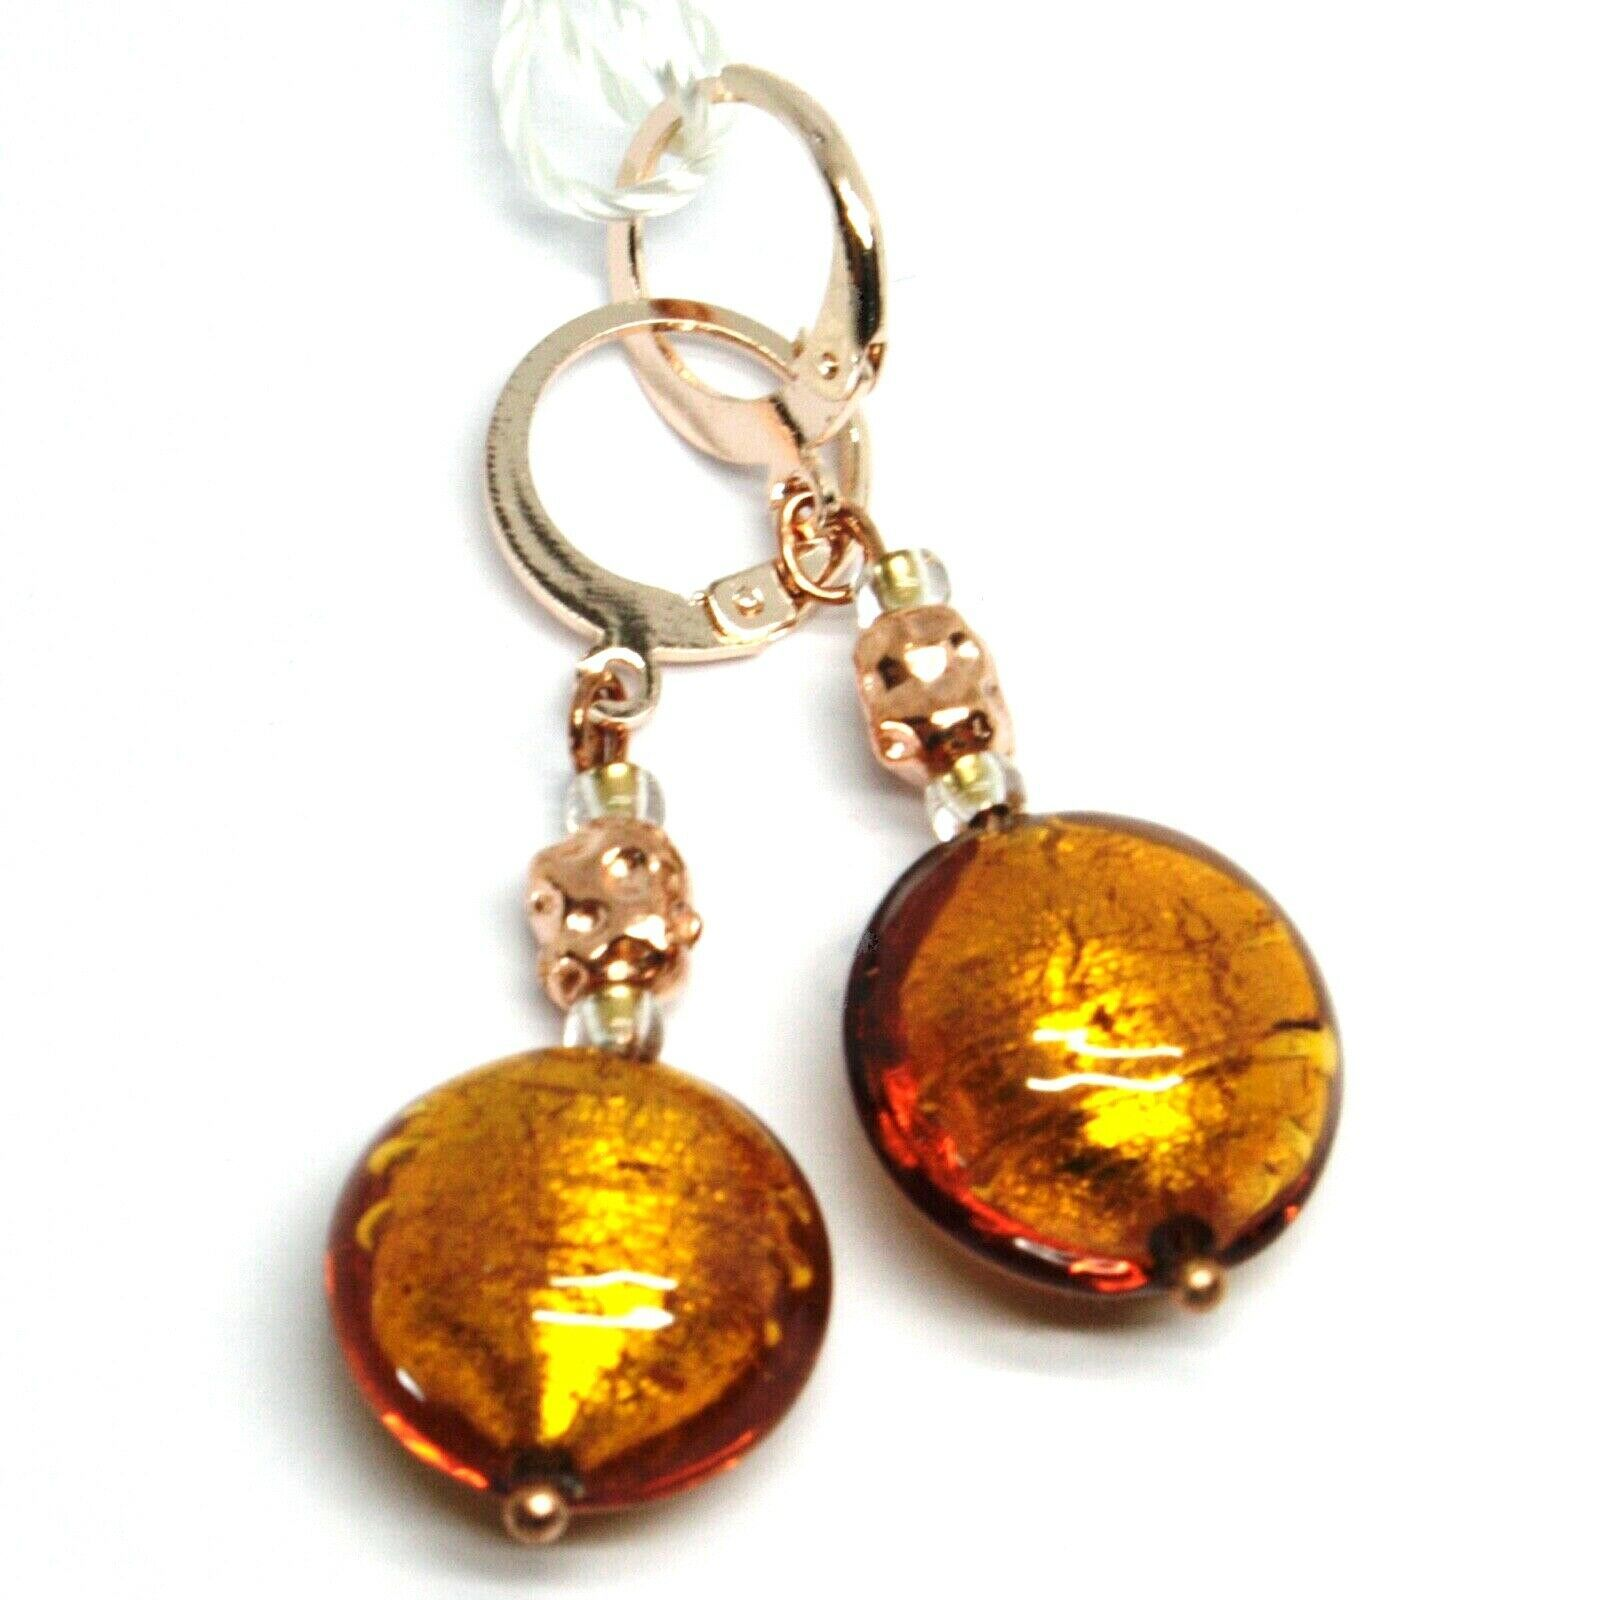 "PENDANT ROSE EARRINGS ORANGE ROUNDED DISC MURANO GLASS 4.5cm 1.8"" MADE IN ITALY"